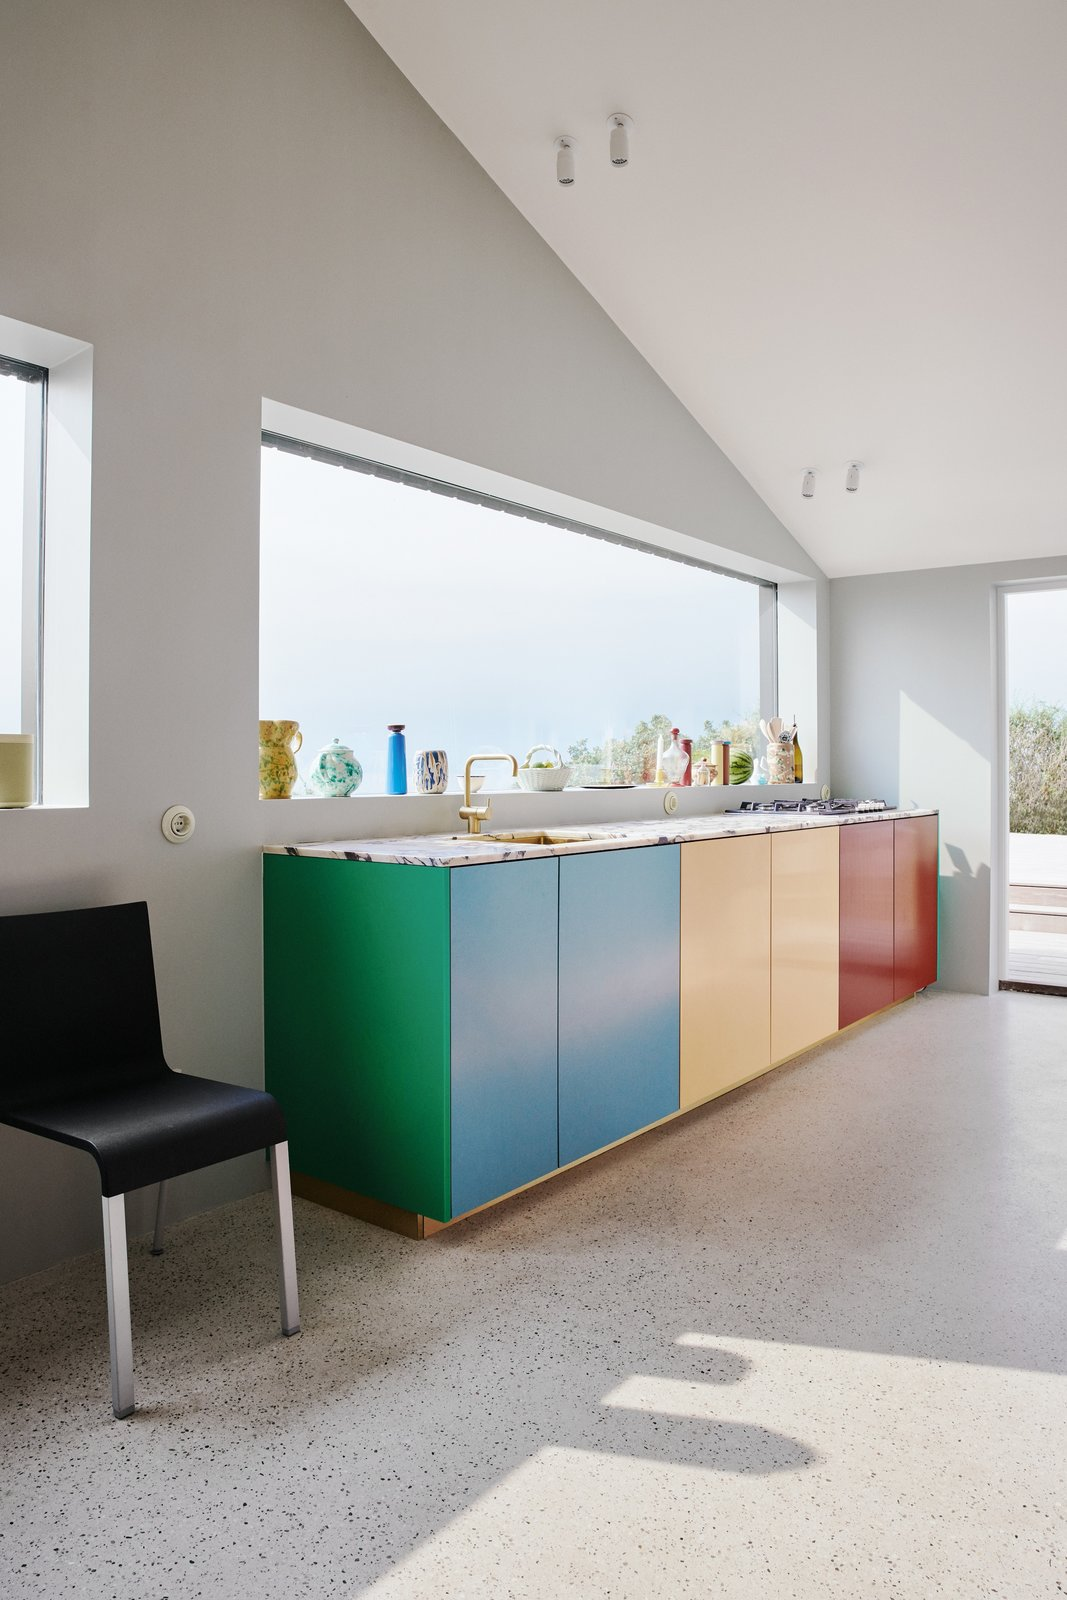 """""""It is also possible to add a separate kitchen island in a different color than the rest of the kitchen,"""" suggests Christensen."""